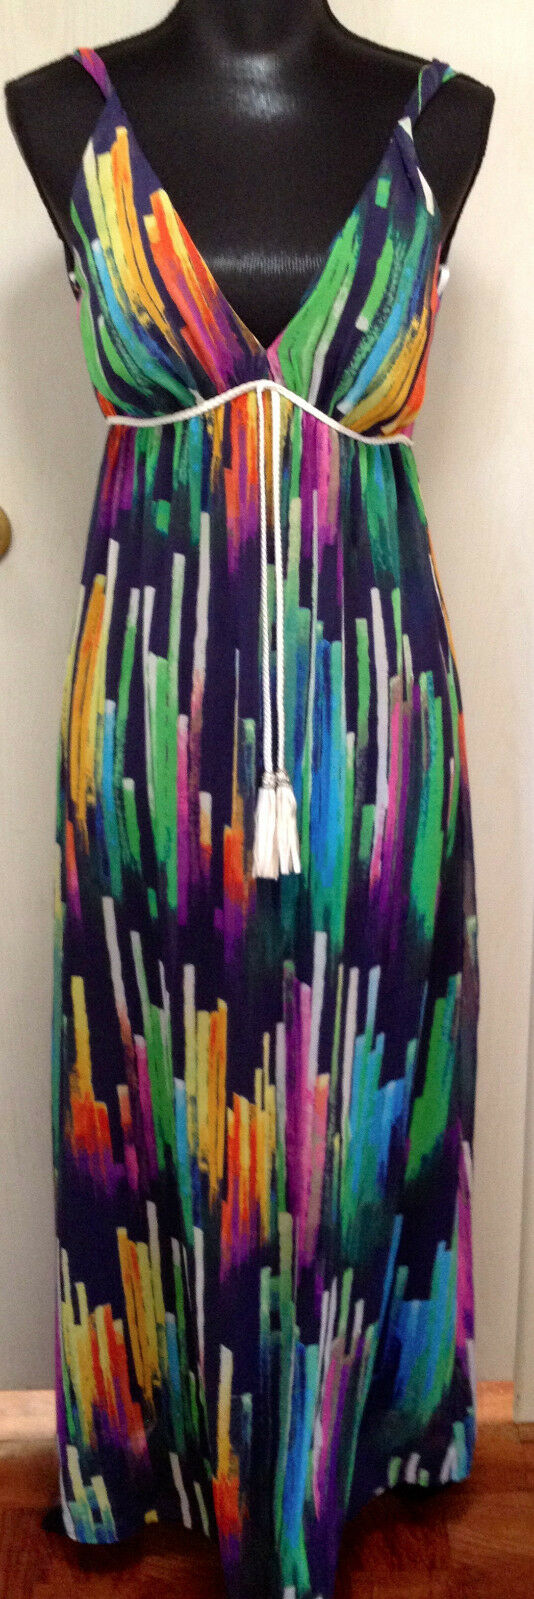 Papaya Multicolord Striped Sleeveless Dress Size Small